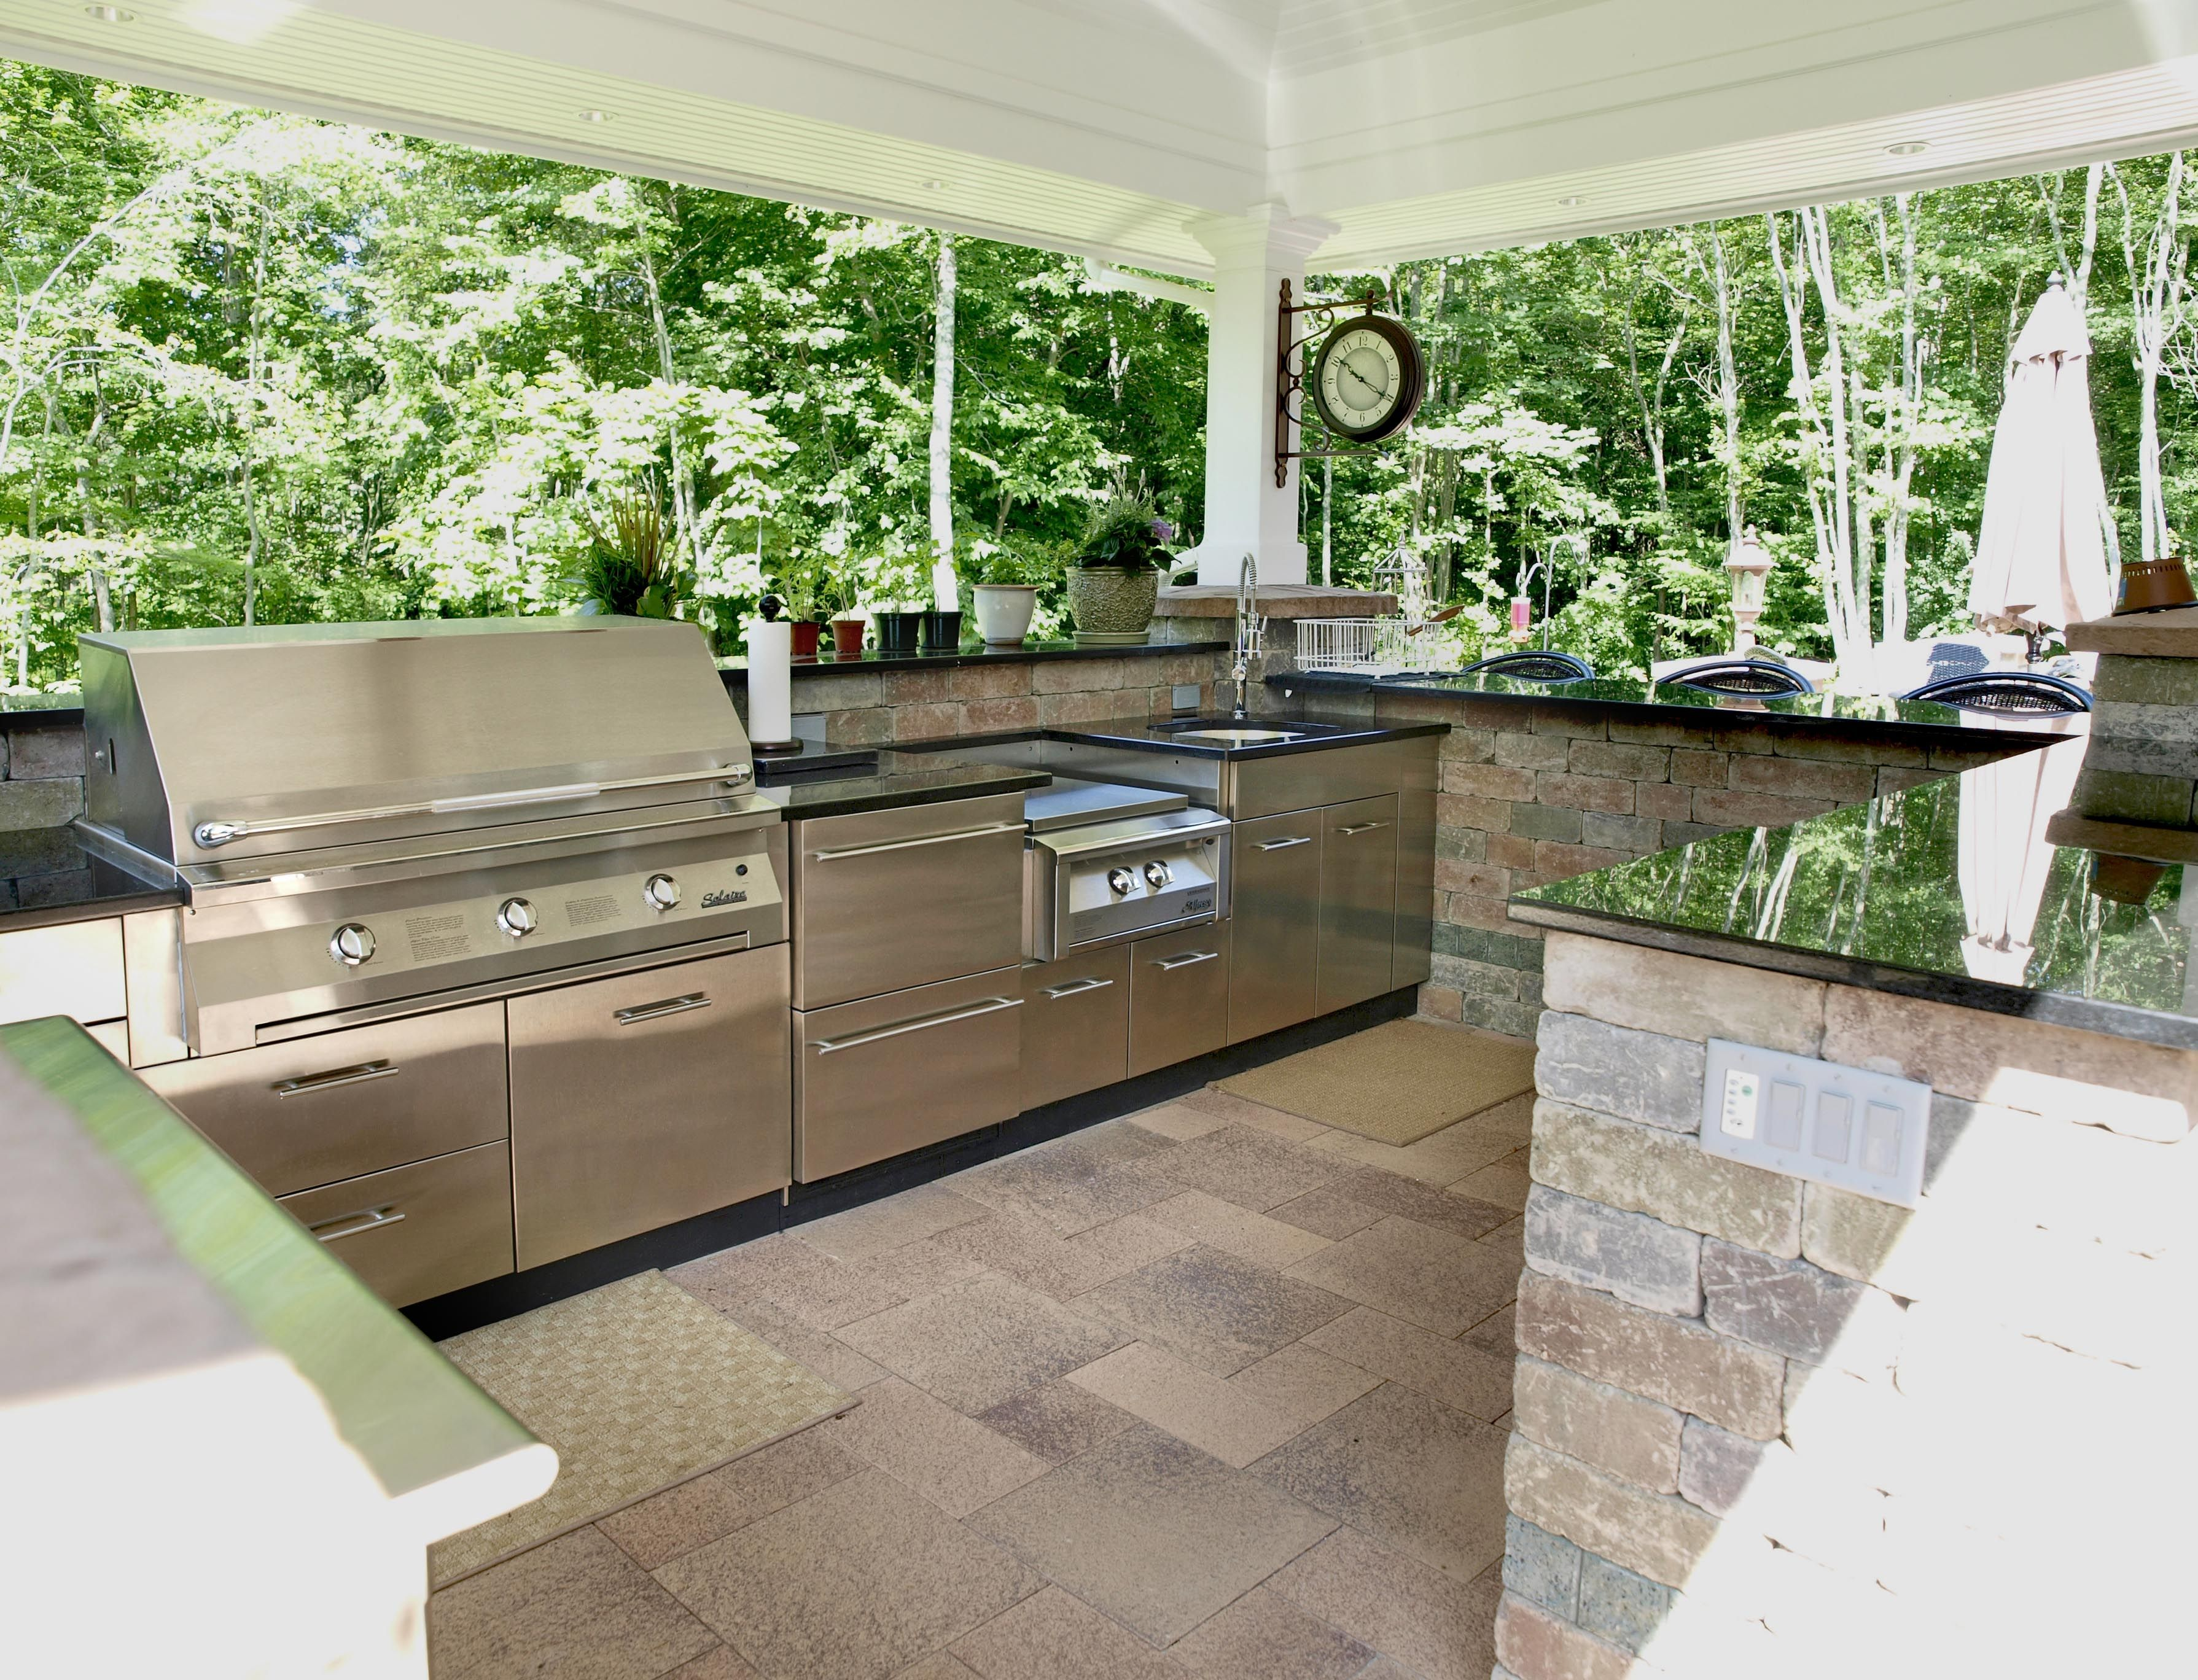 Outdoor Kitchens  The Ultimate Garden Party  Kitchens Outdoor Awesome Outside Kitchens Designs 2018